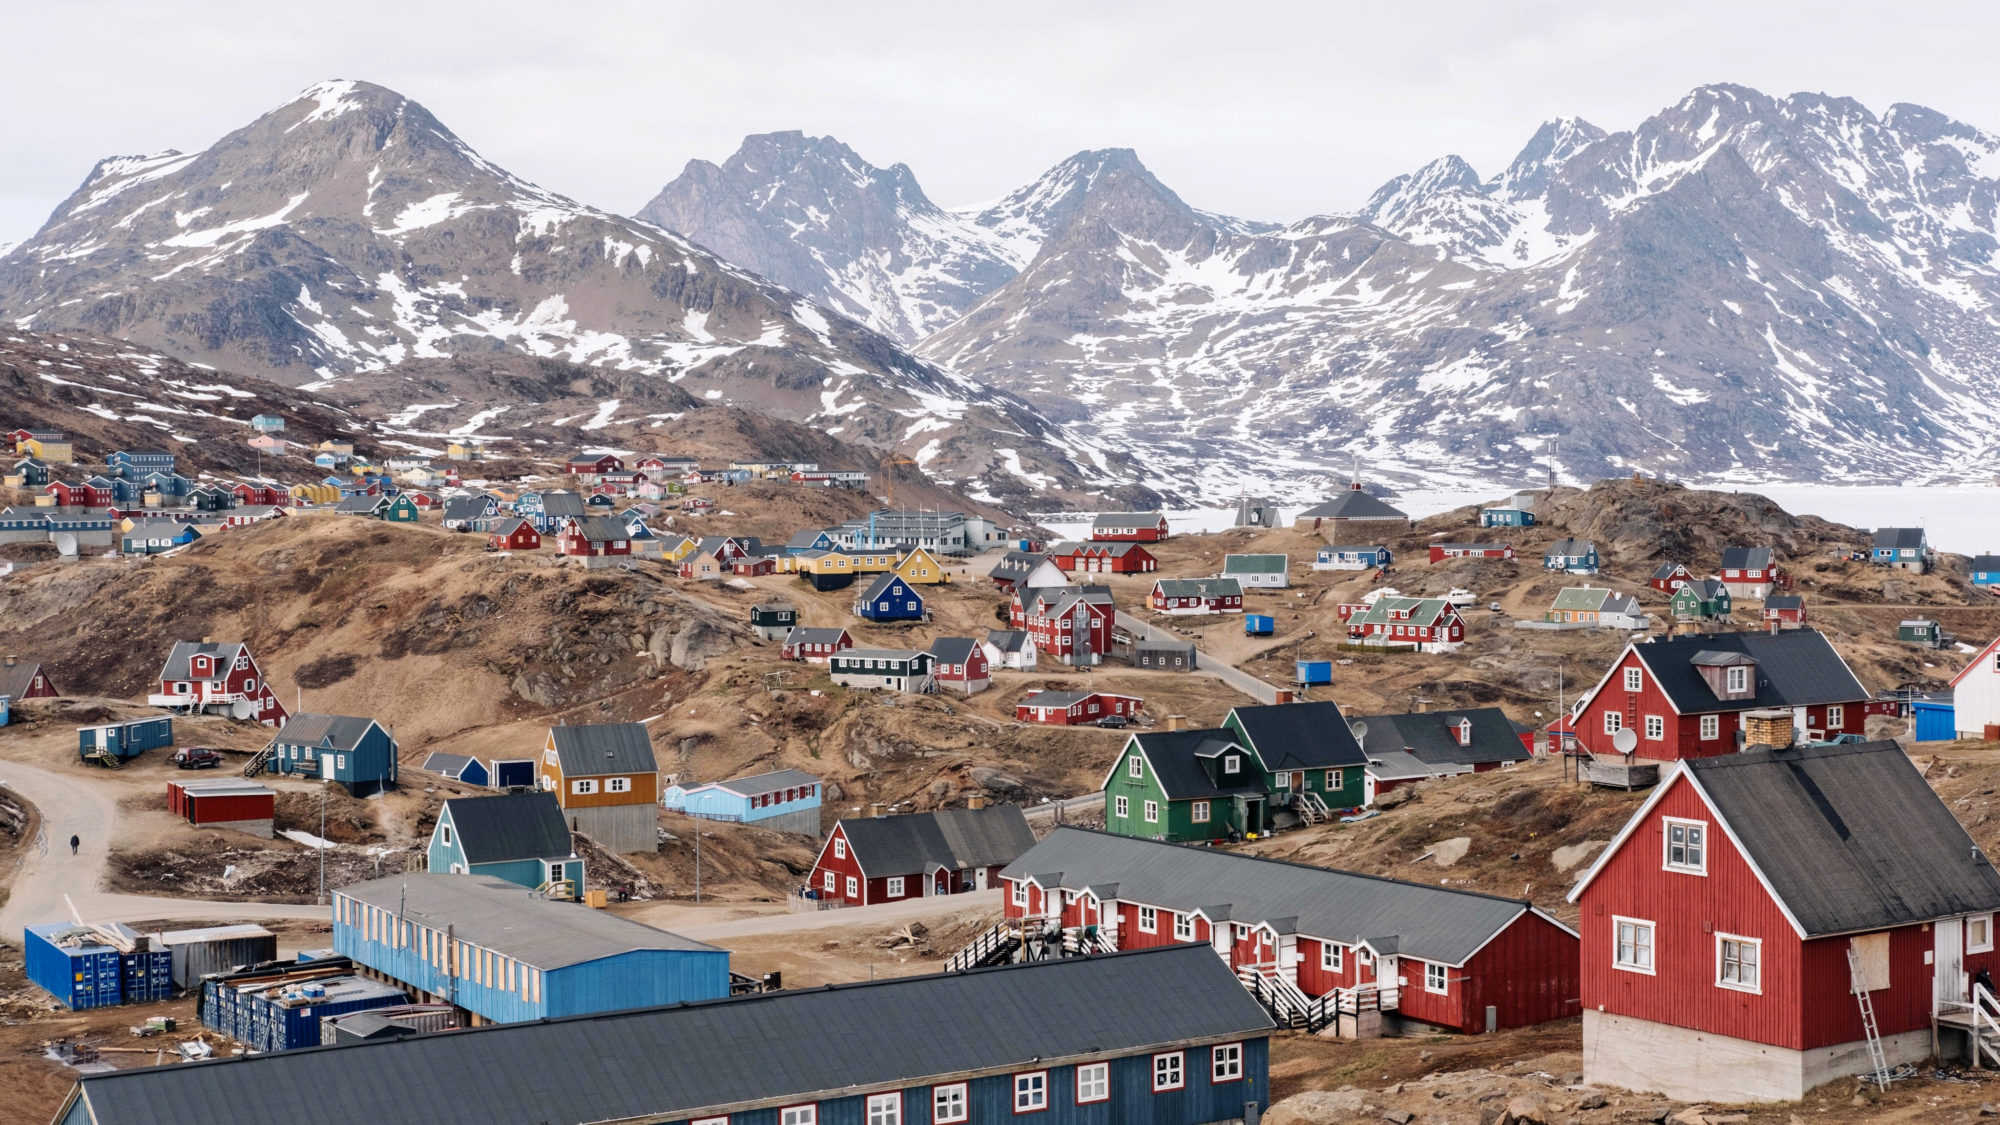 View of a town in Greenland.